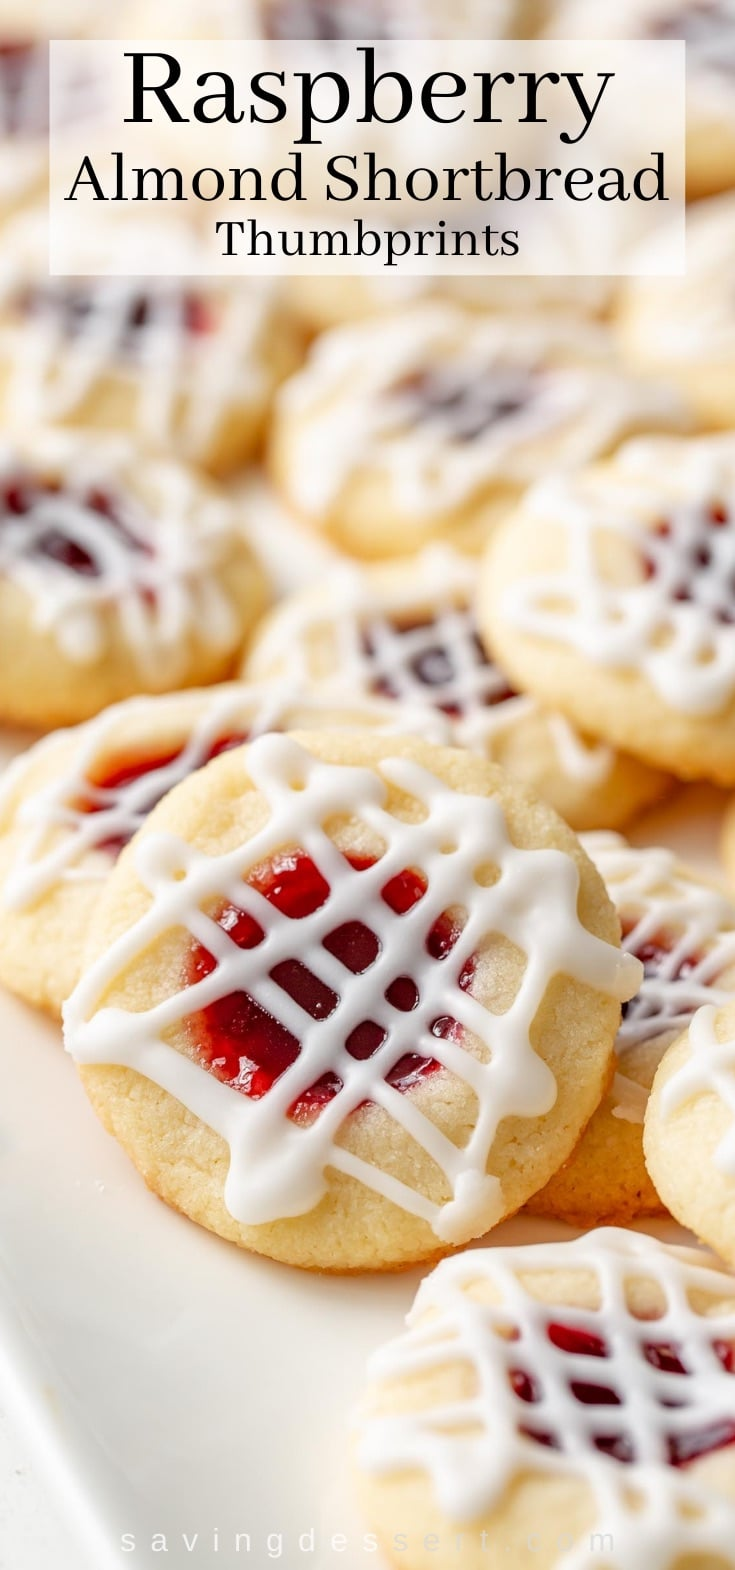 A closeup of a tray of thumbprint cookies filled with raspberry jam topped with a drizzle of icing